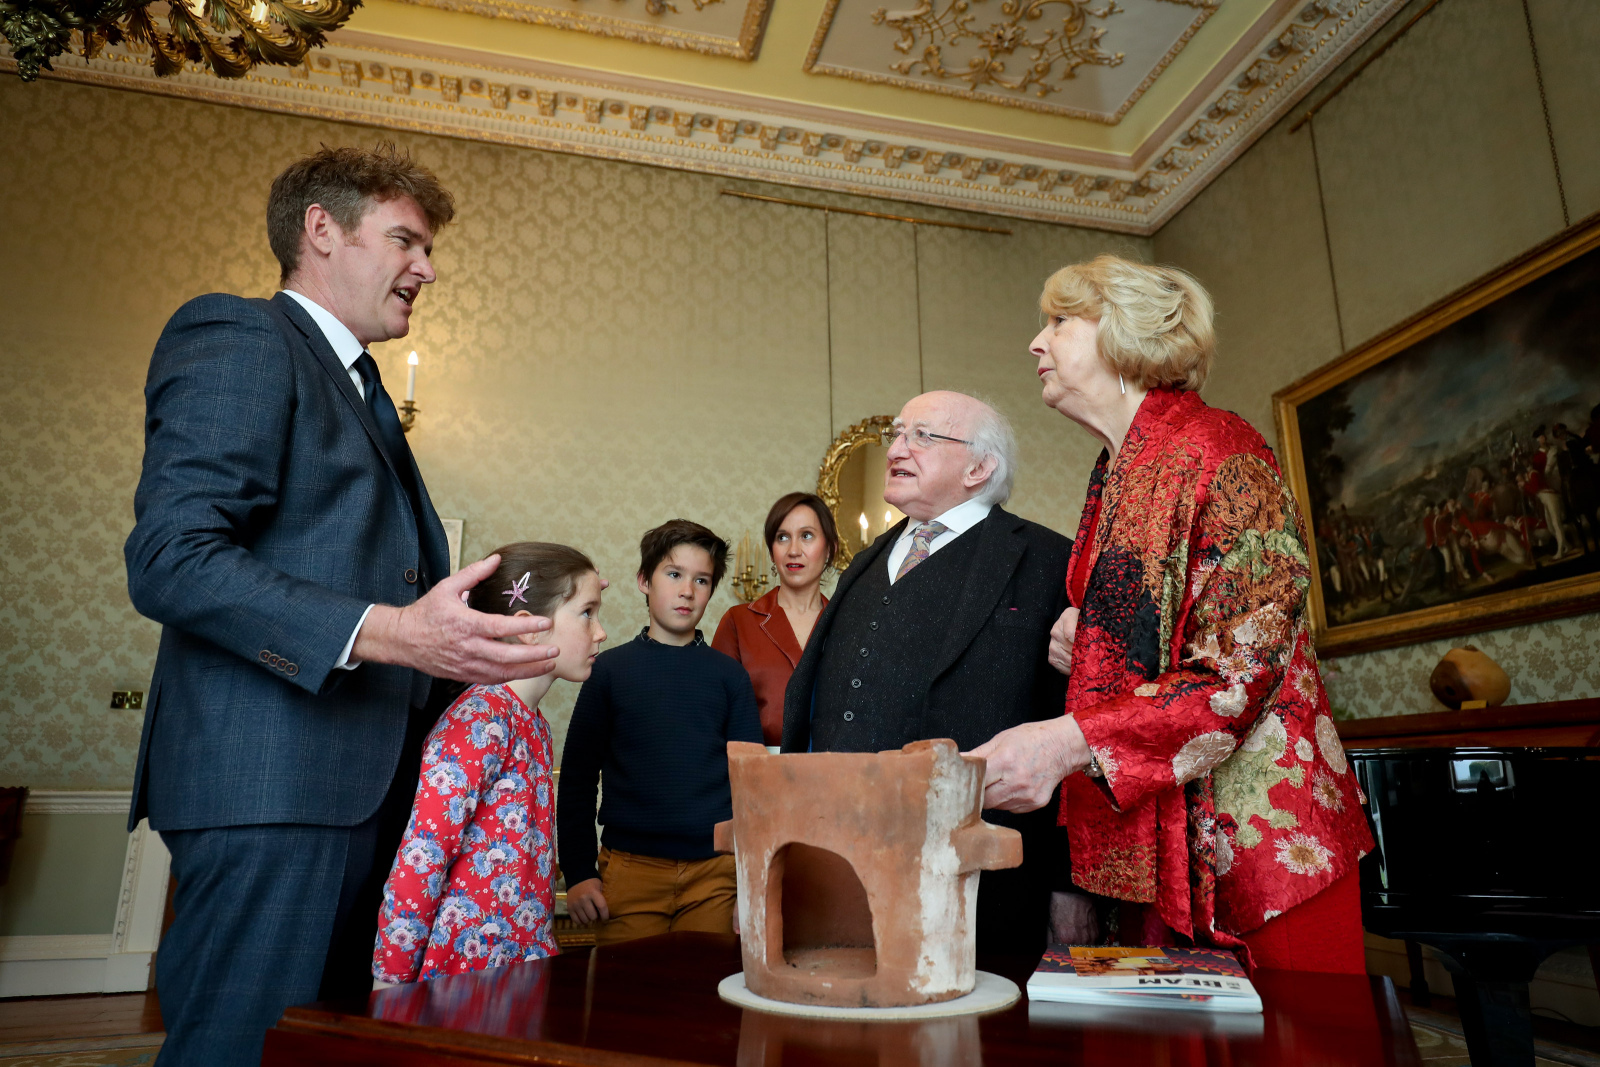 President receives Mr. Conor Fox who presents an Alfred Chisale stove from Malawi